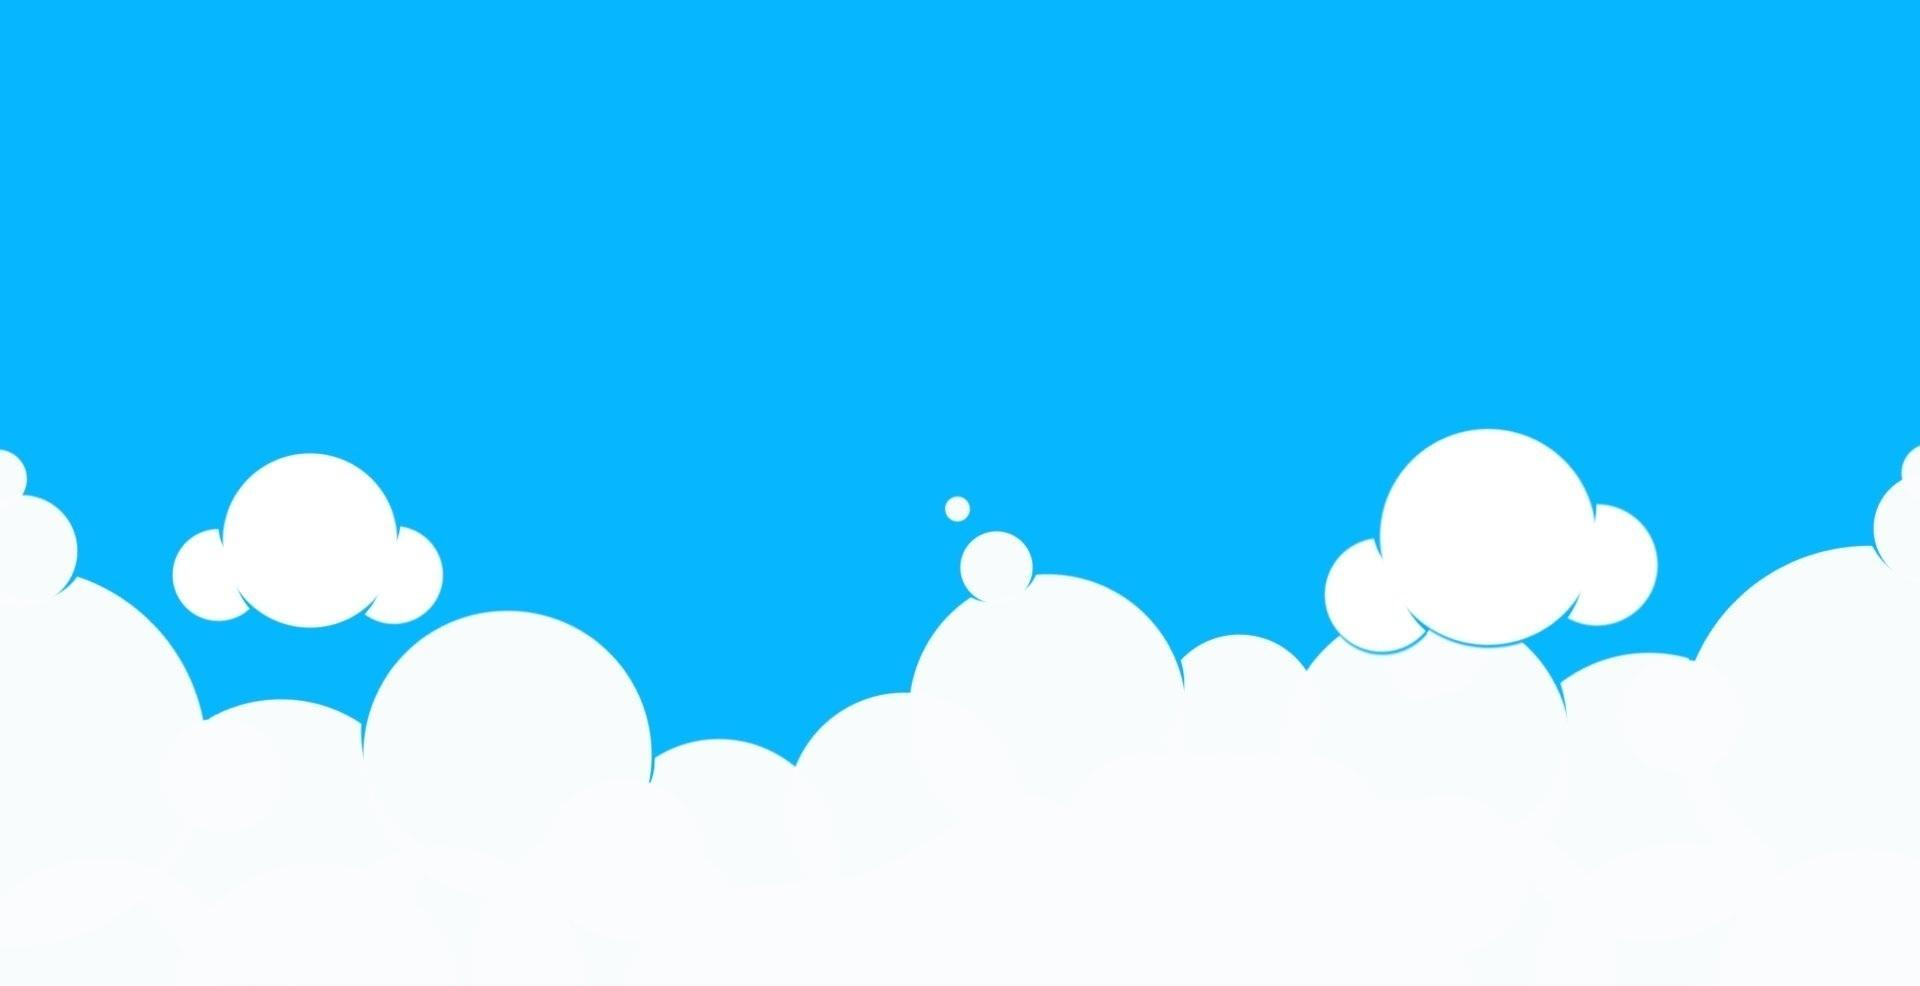 Sky background clipart